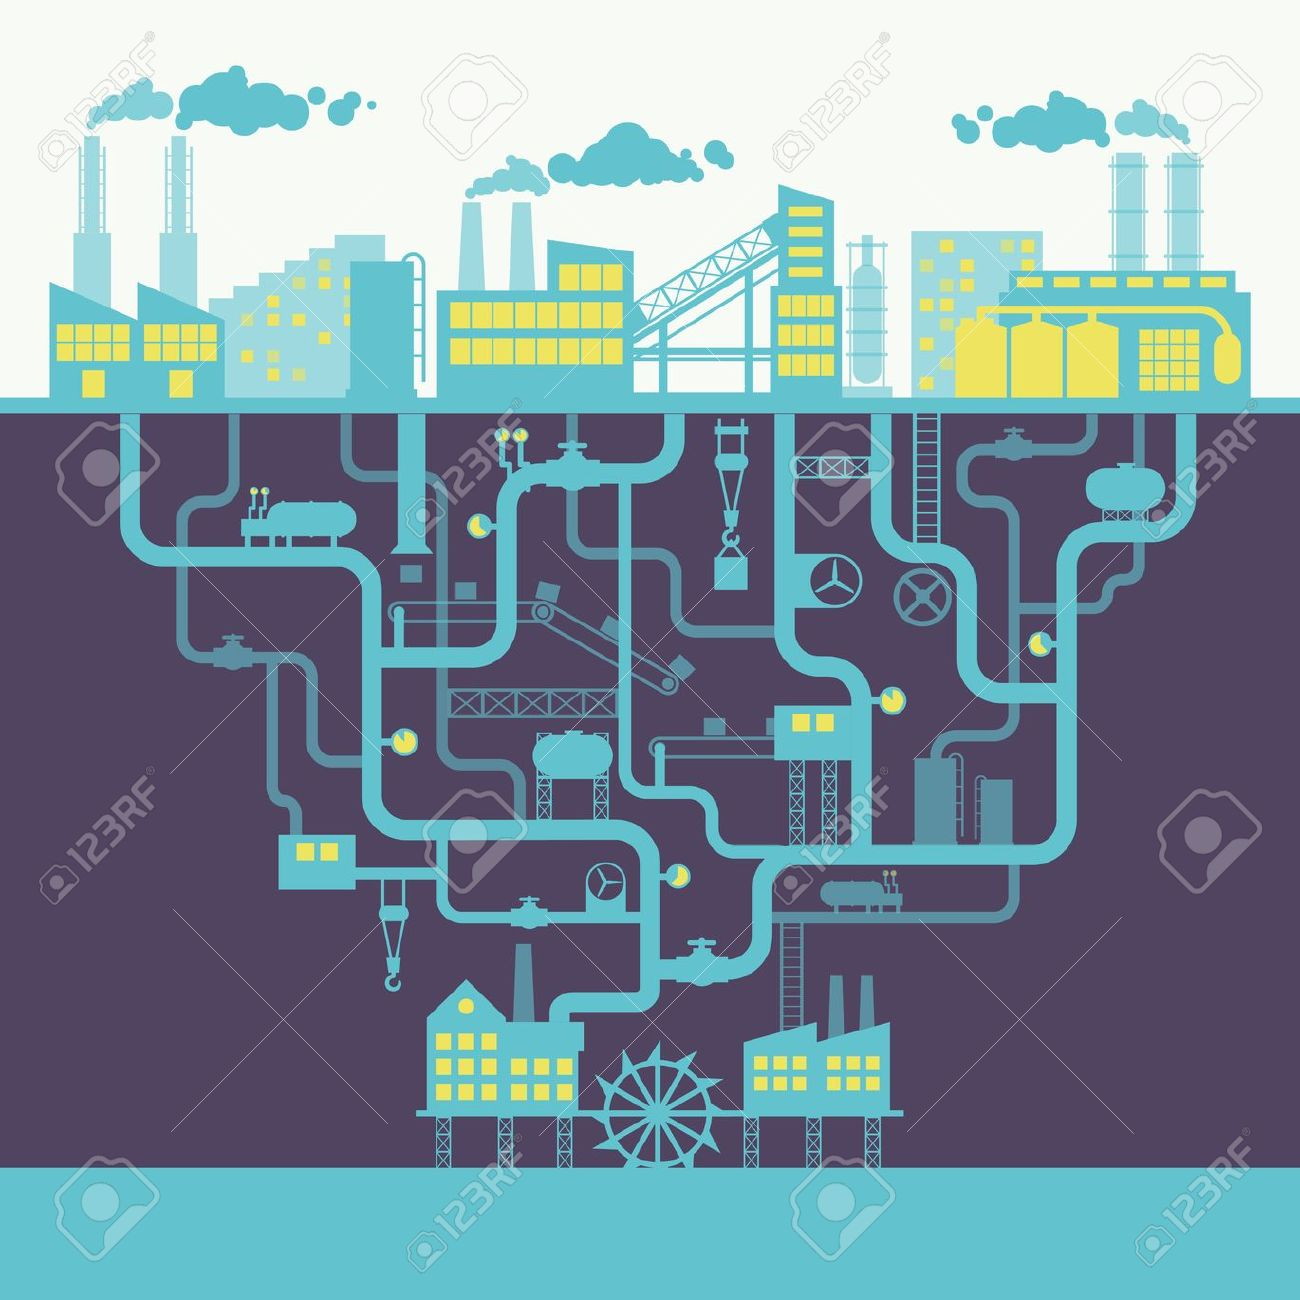 Factory clipart background 27147312 background or factory manufacturing